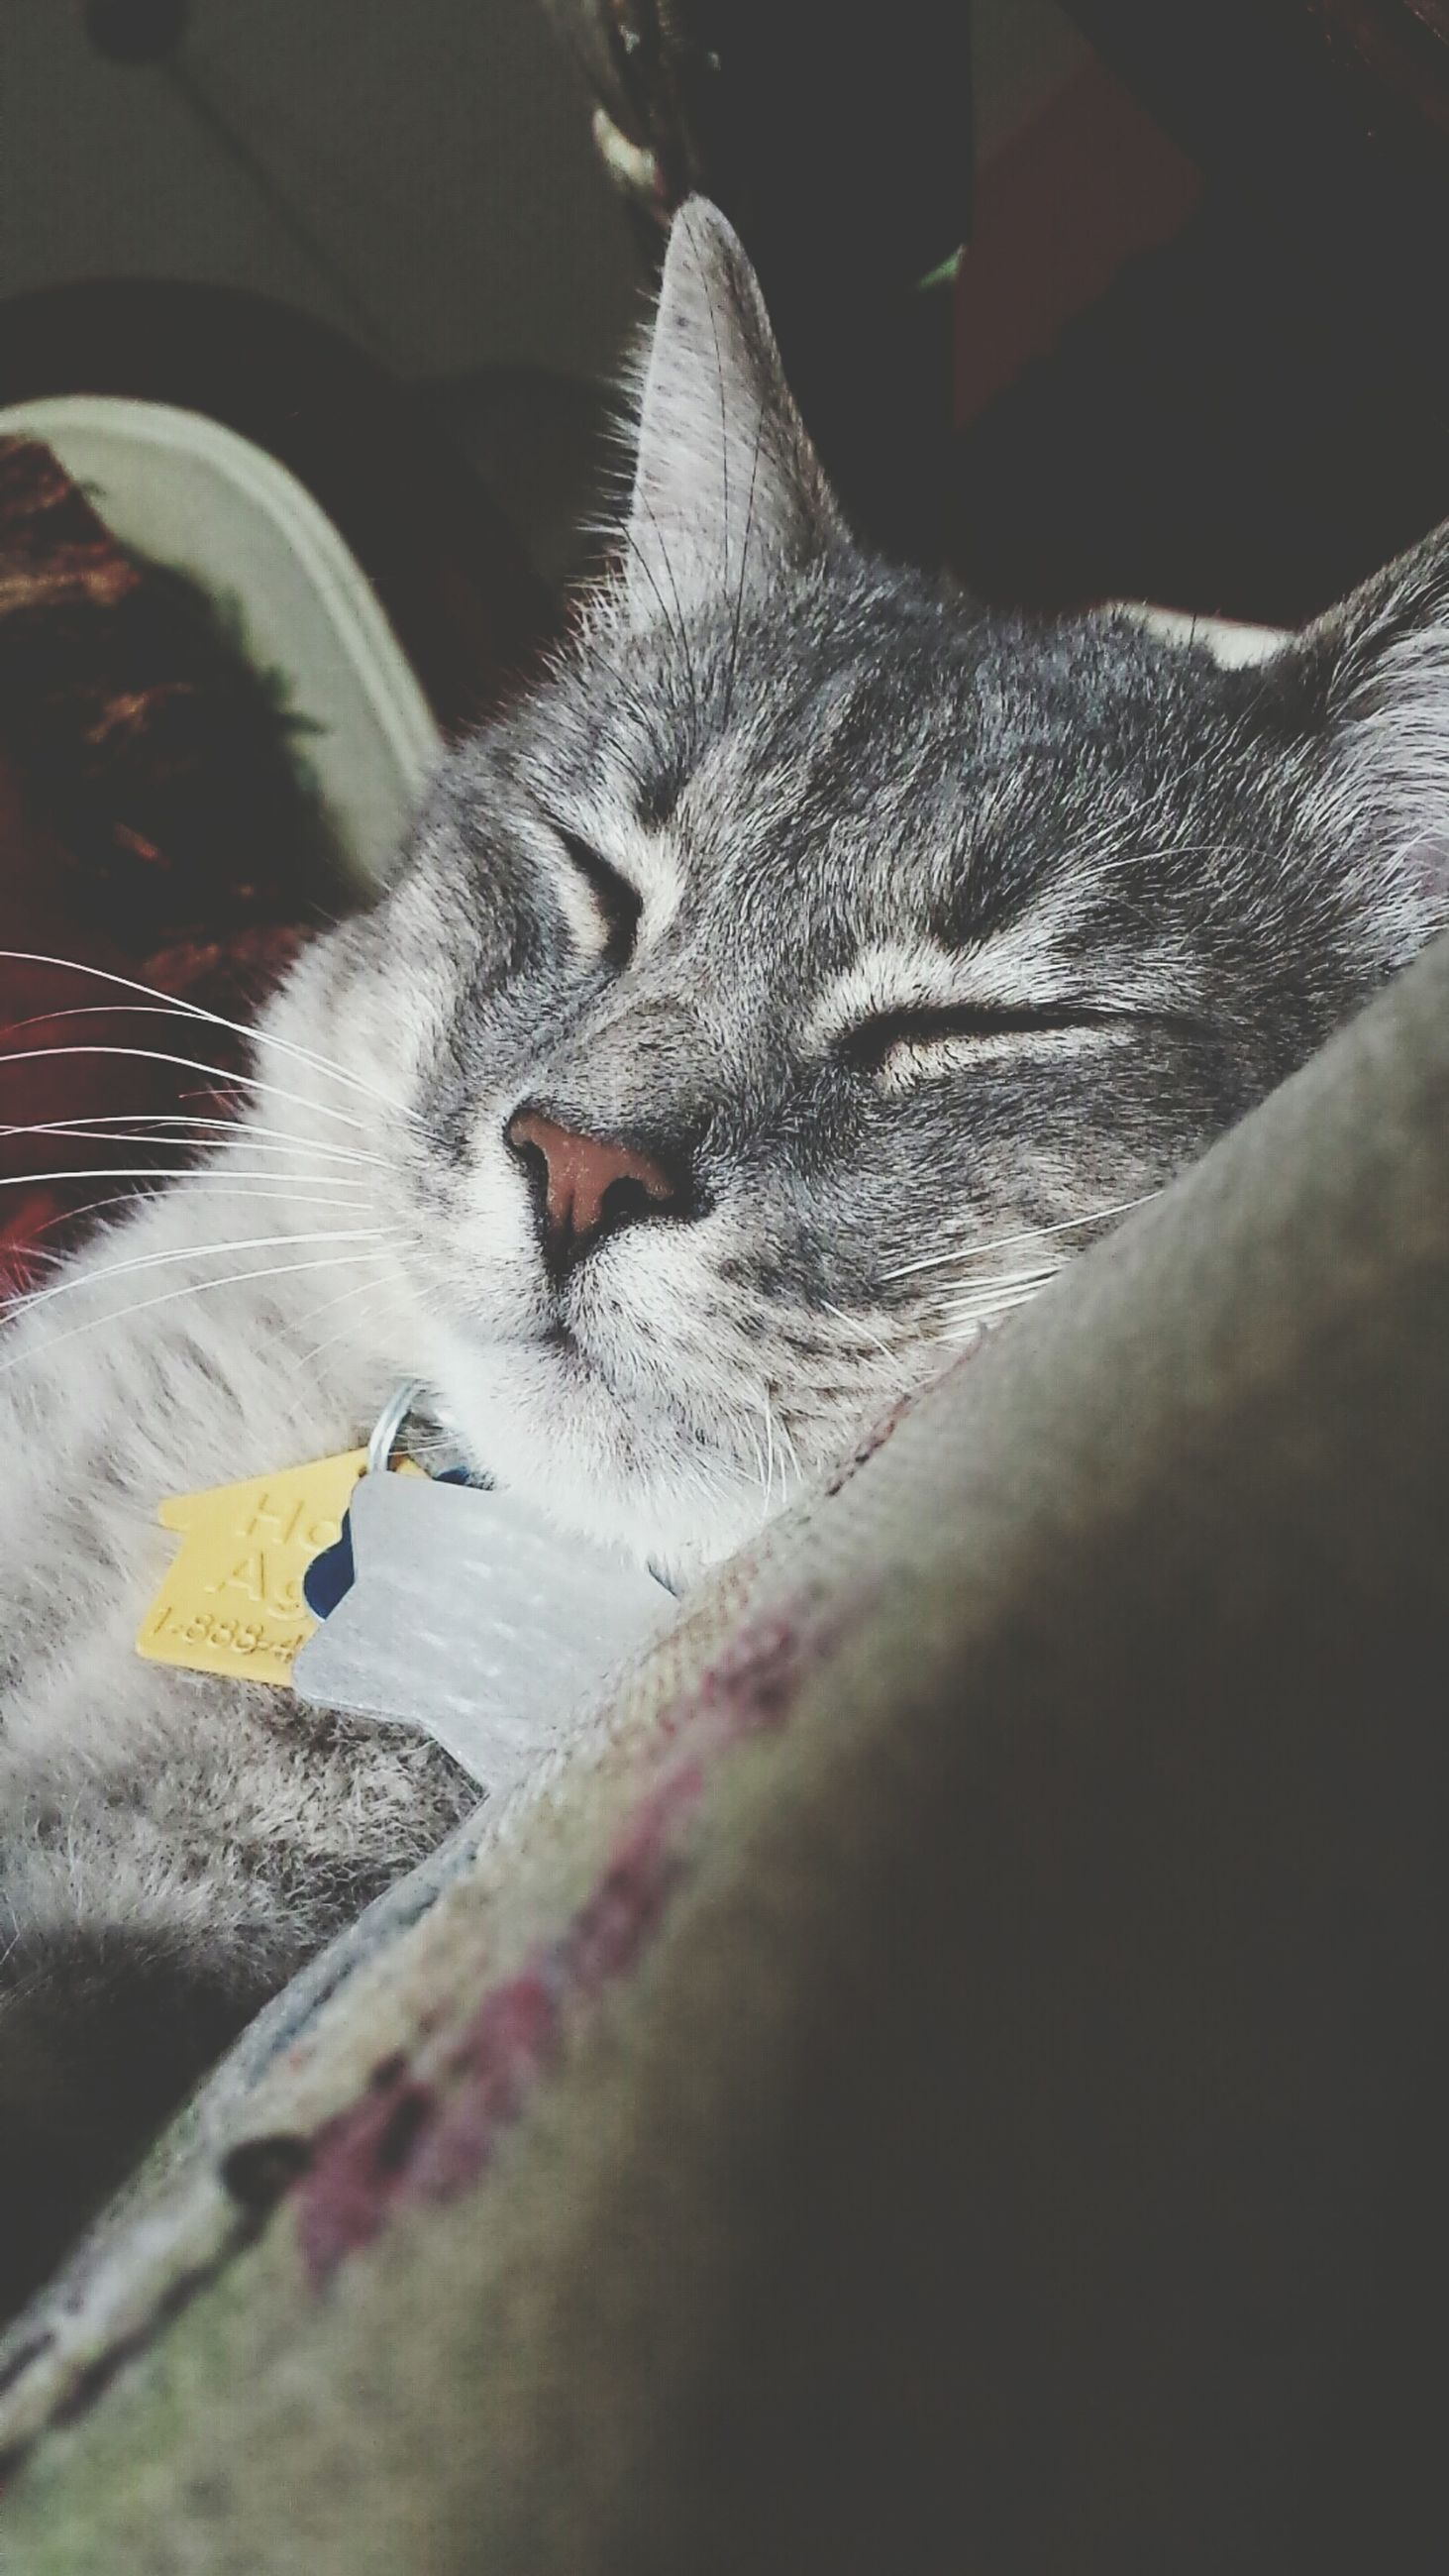 domestic cat, animal themes, pets, domestic animals, one animal, cat, mammal, feline, indoors, relaxation, whisker, lying down, resting, sleeping, home interior, bed, high angle view, no people, selective focus, eyes closed